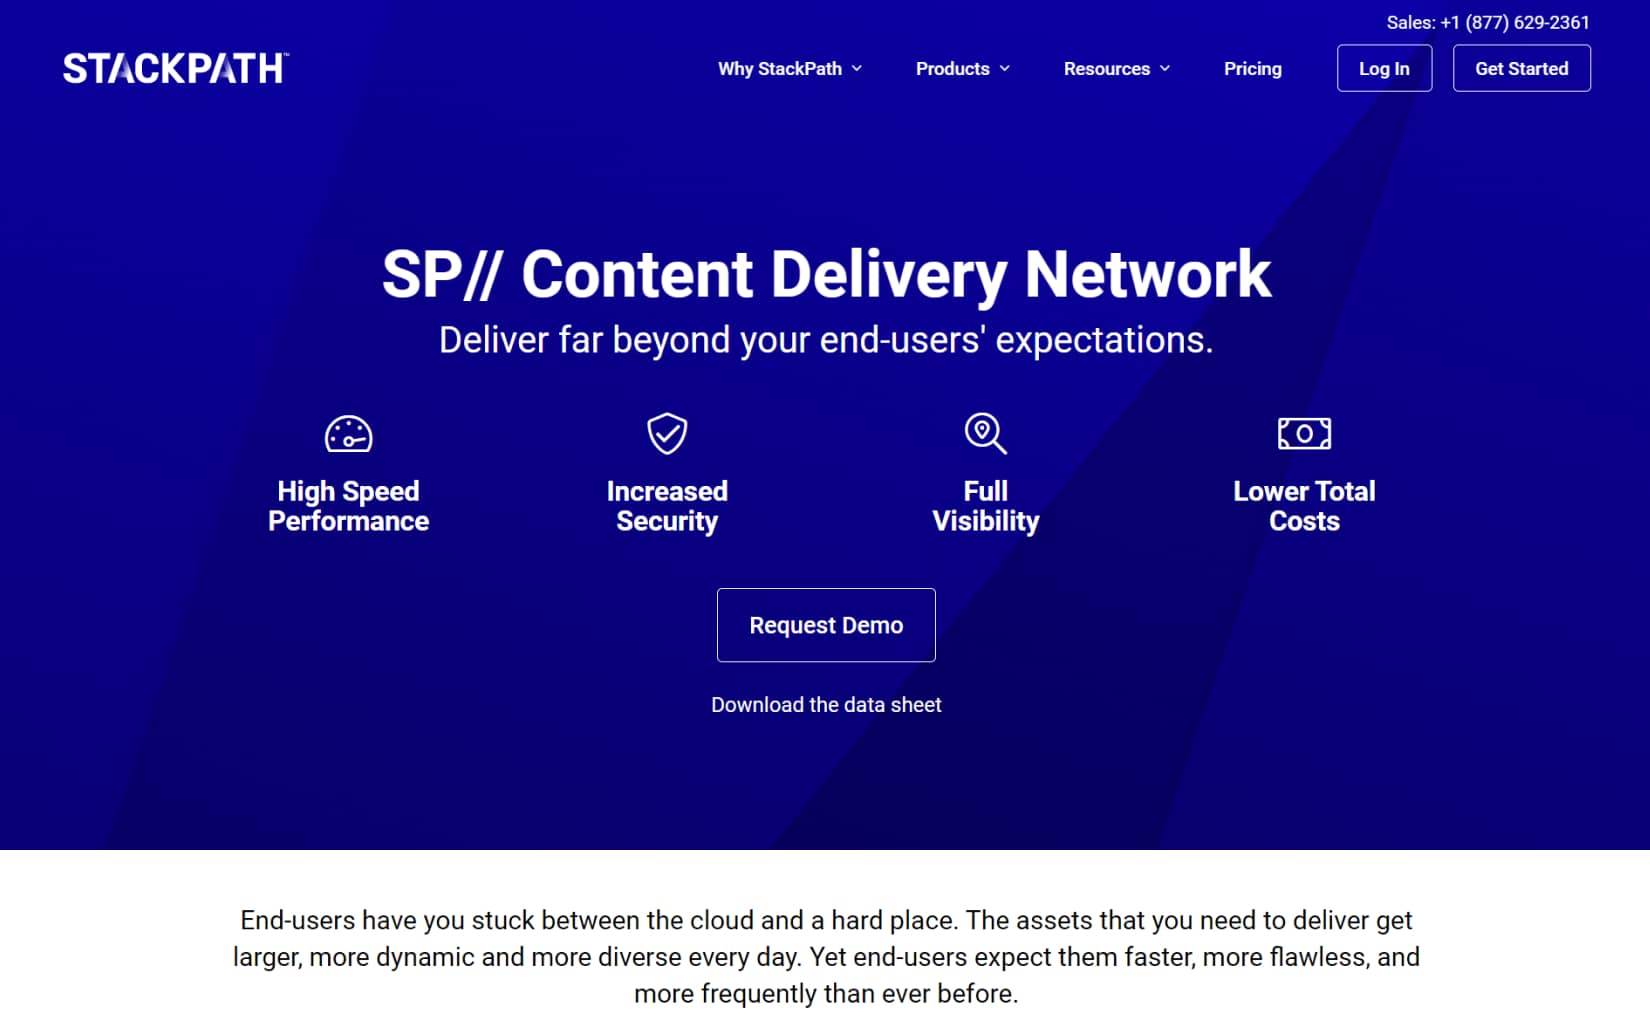 StackPath Content Delivery Network